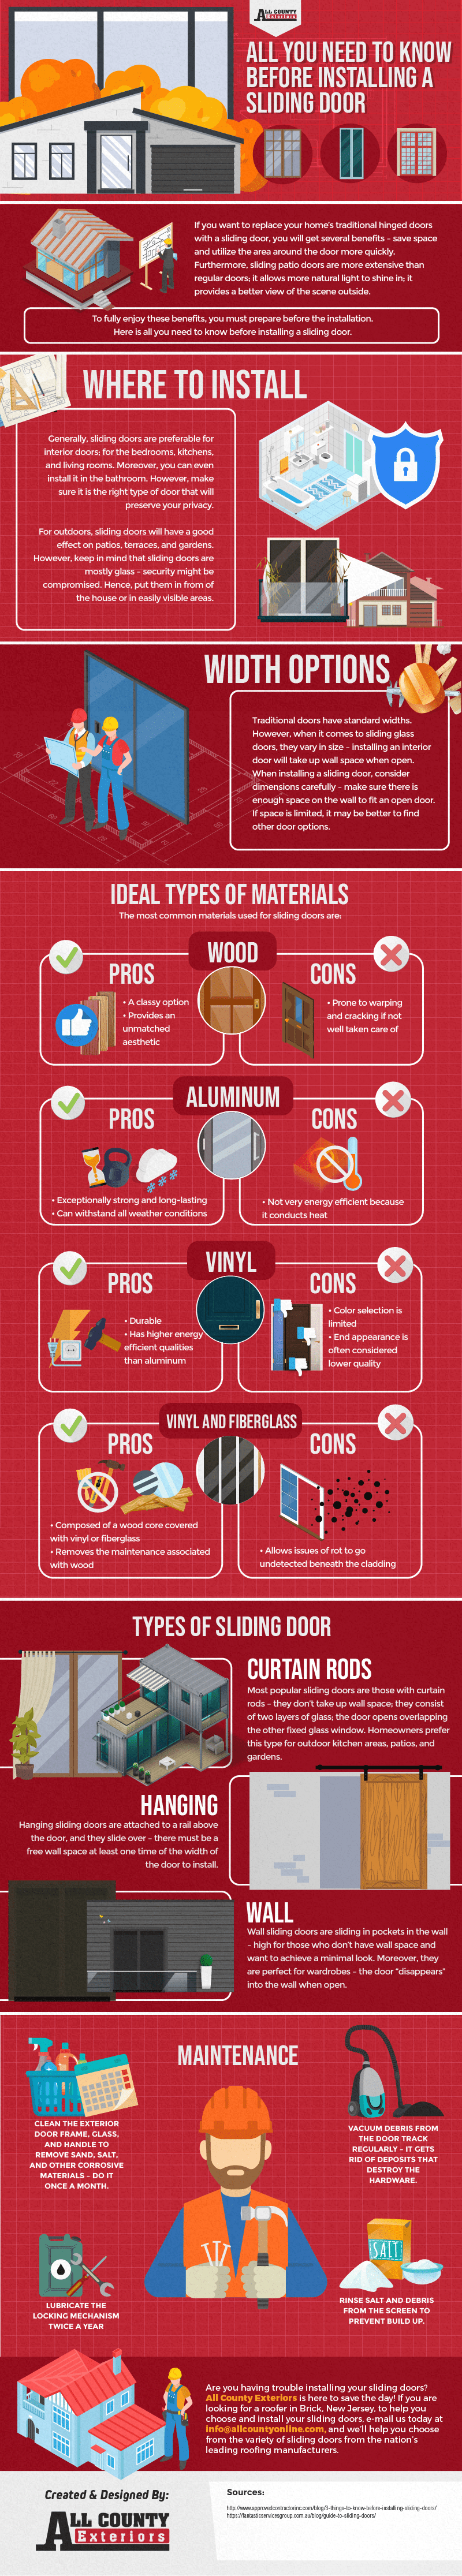 All You Need to Know Before Installing a Sliding Door - Infographic